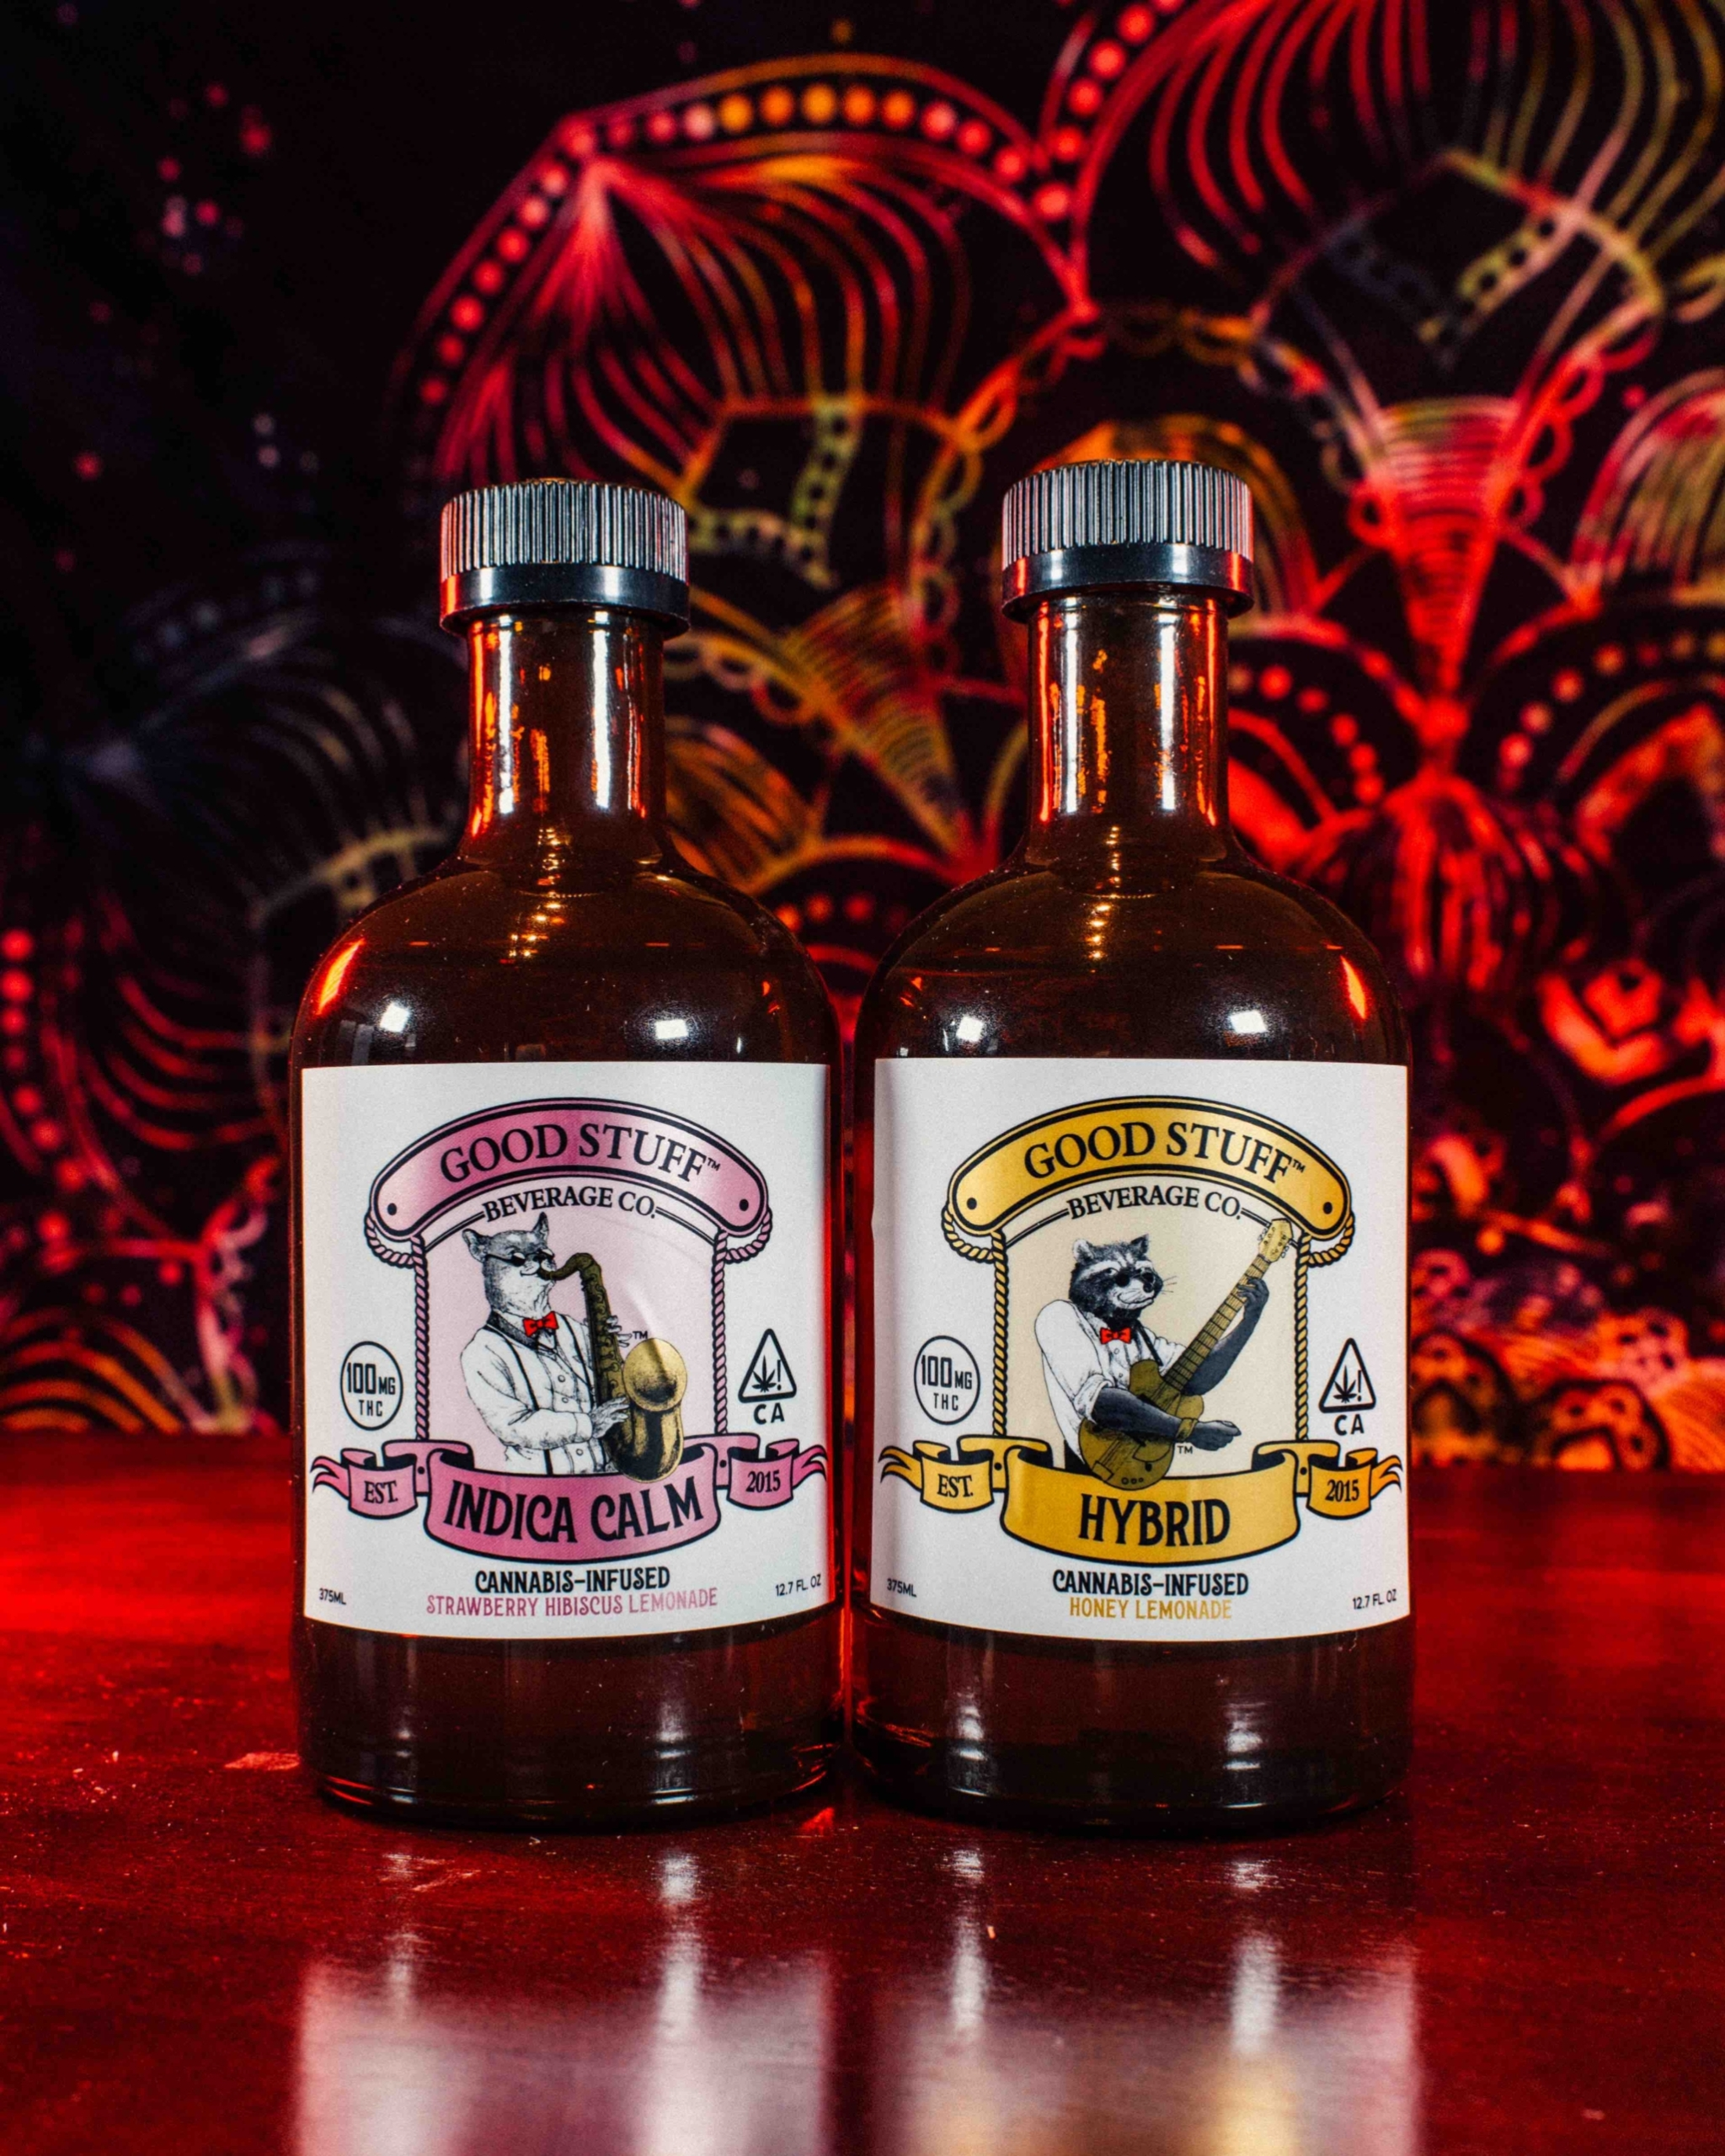 Goodstuff Beverages Is A Delicious Way To Enjoy The Benefits of Smoke-Free Cannabis